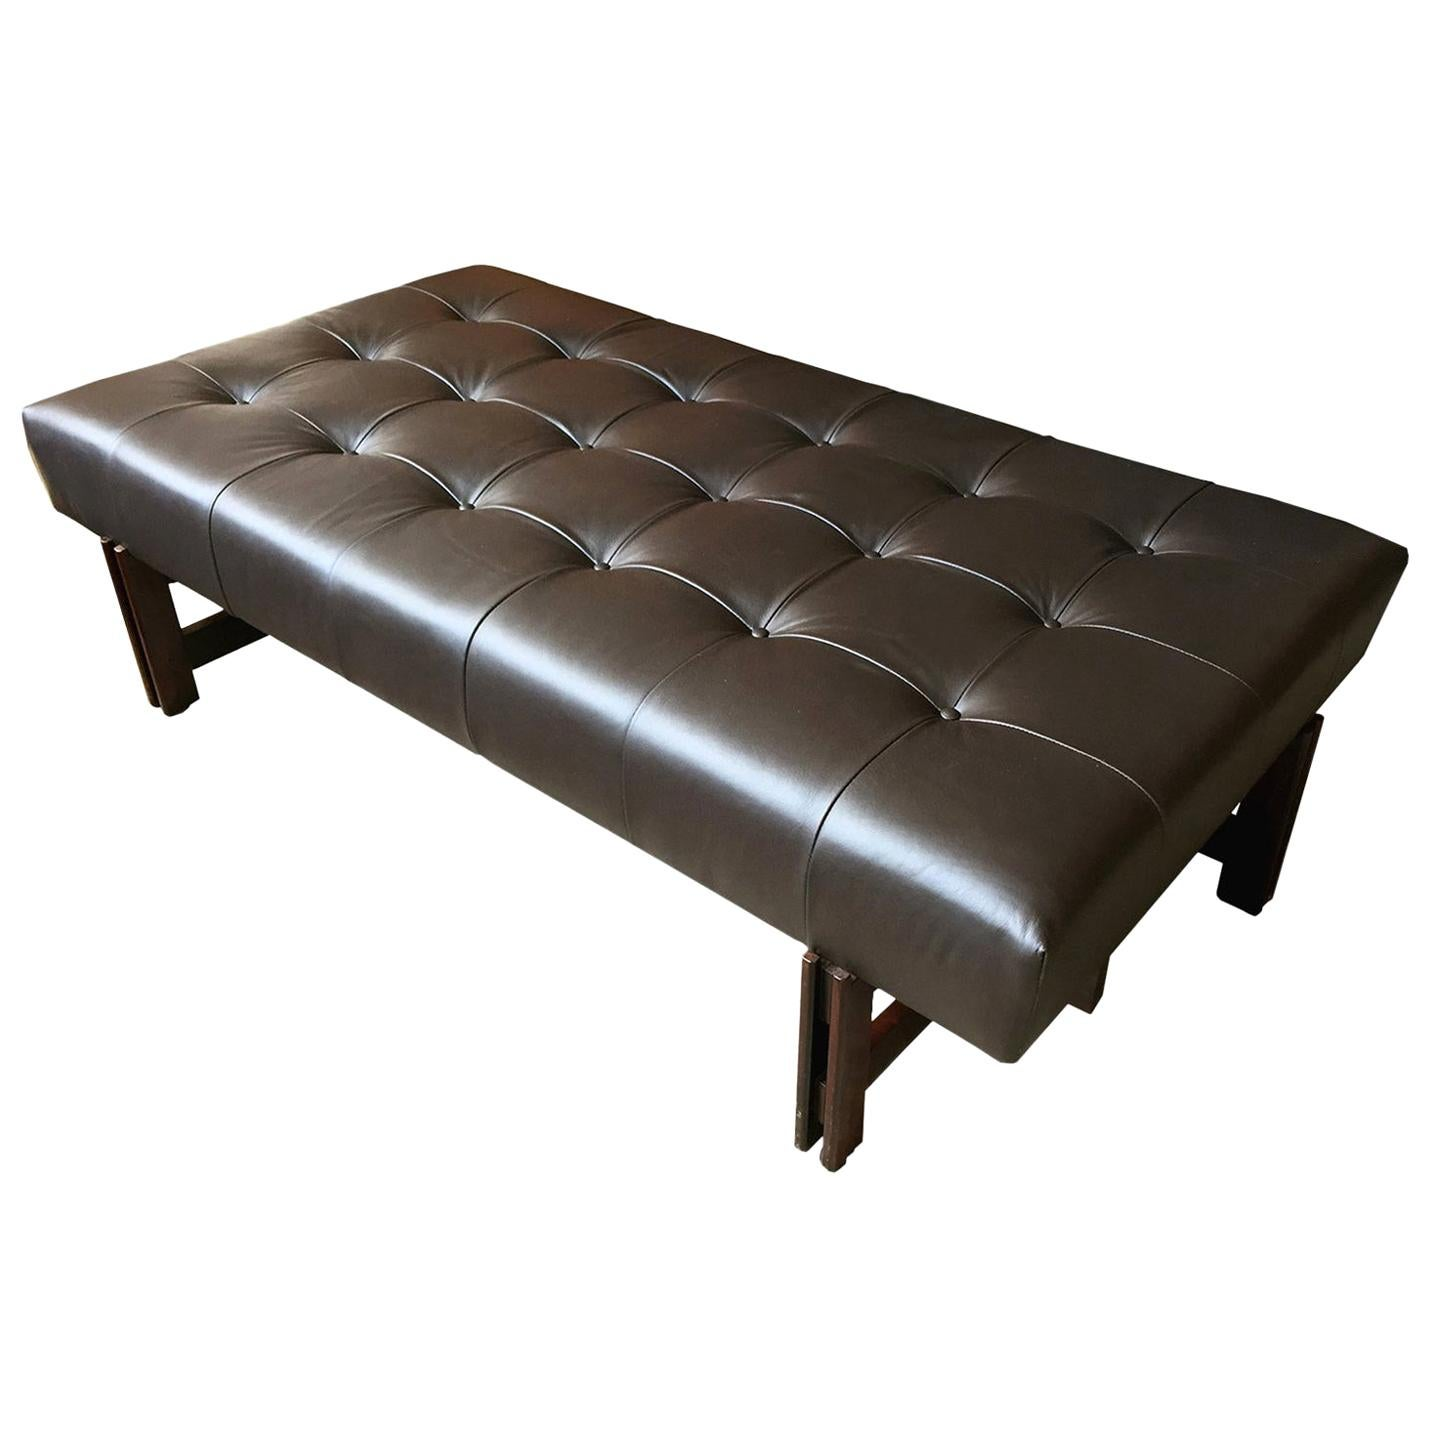 1960s Leather and Rosewood Bench by Ico Parisi